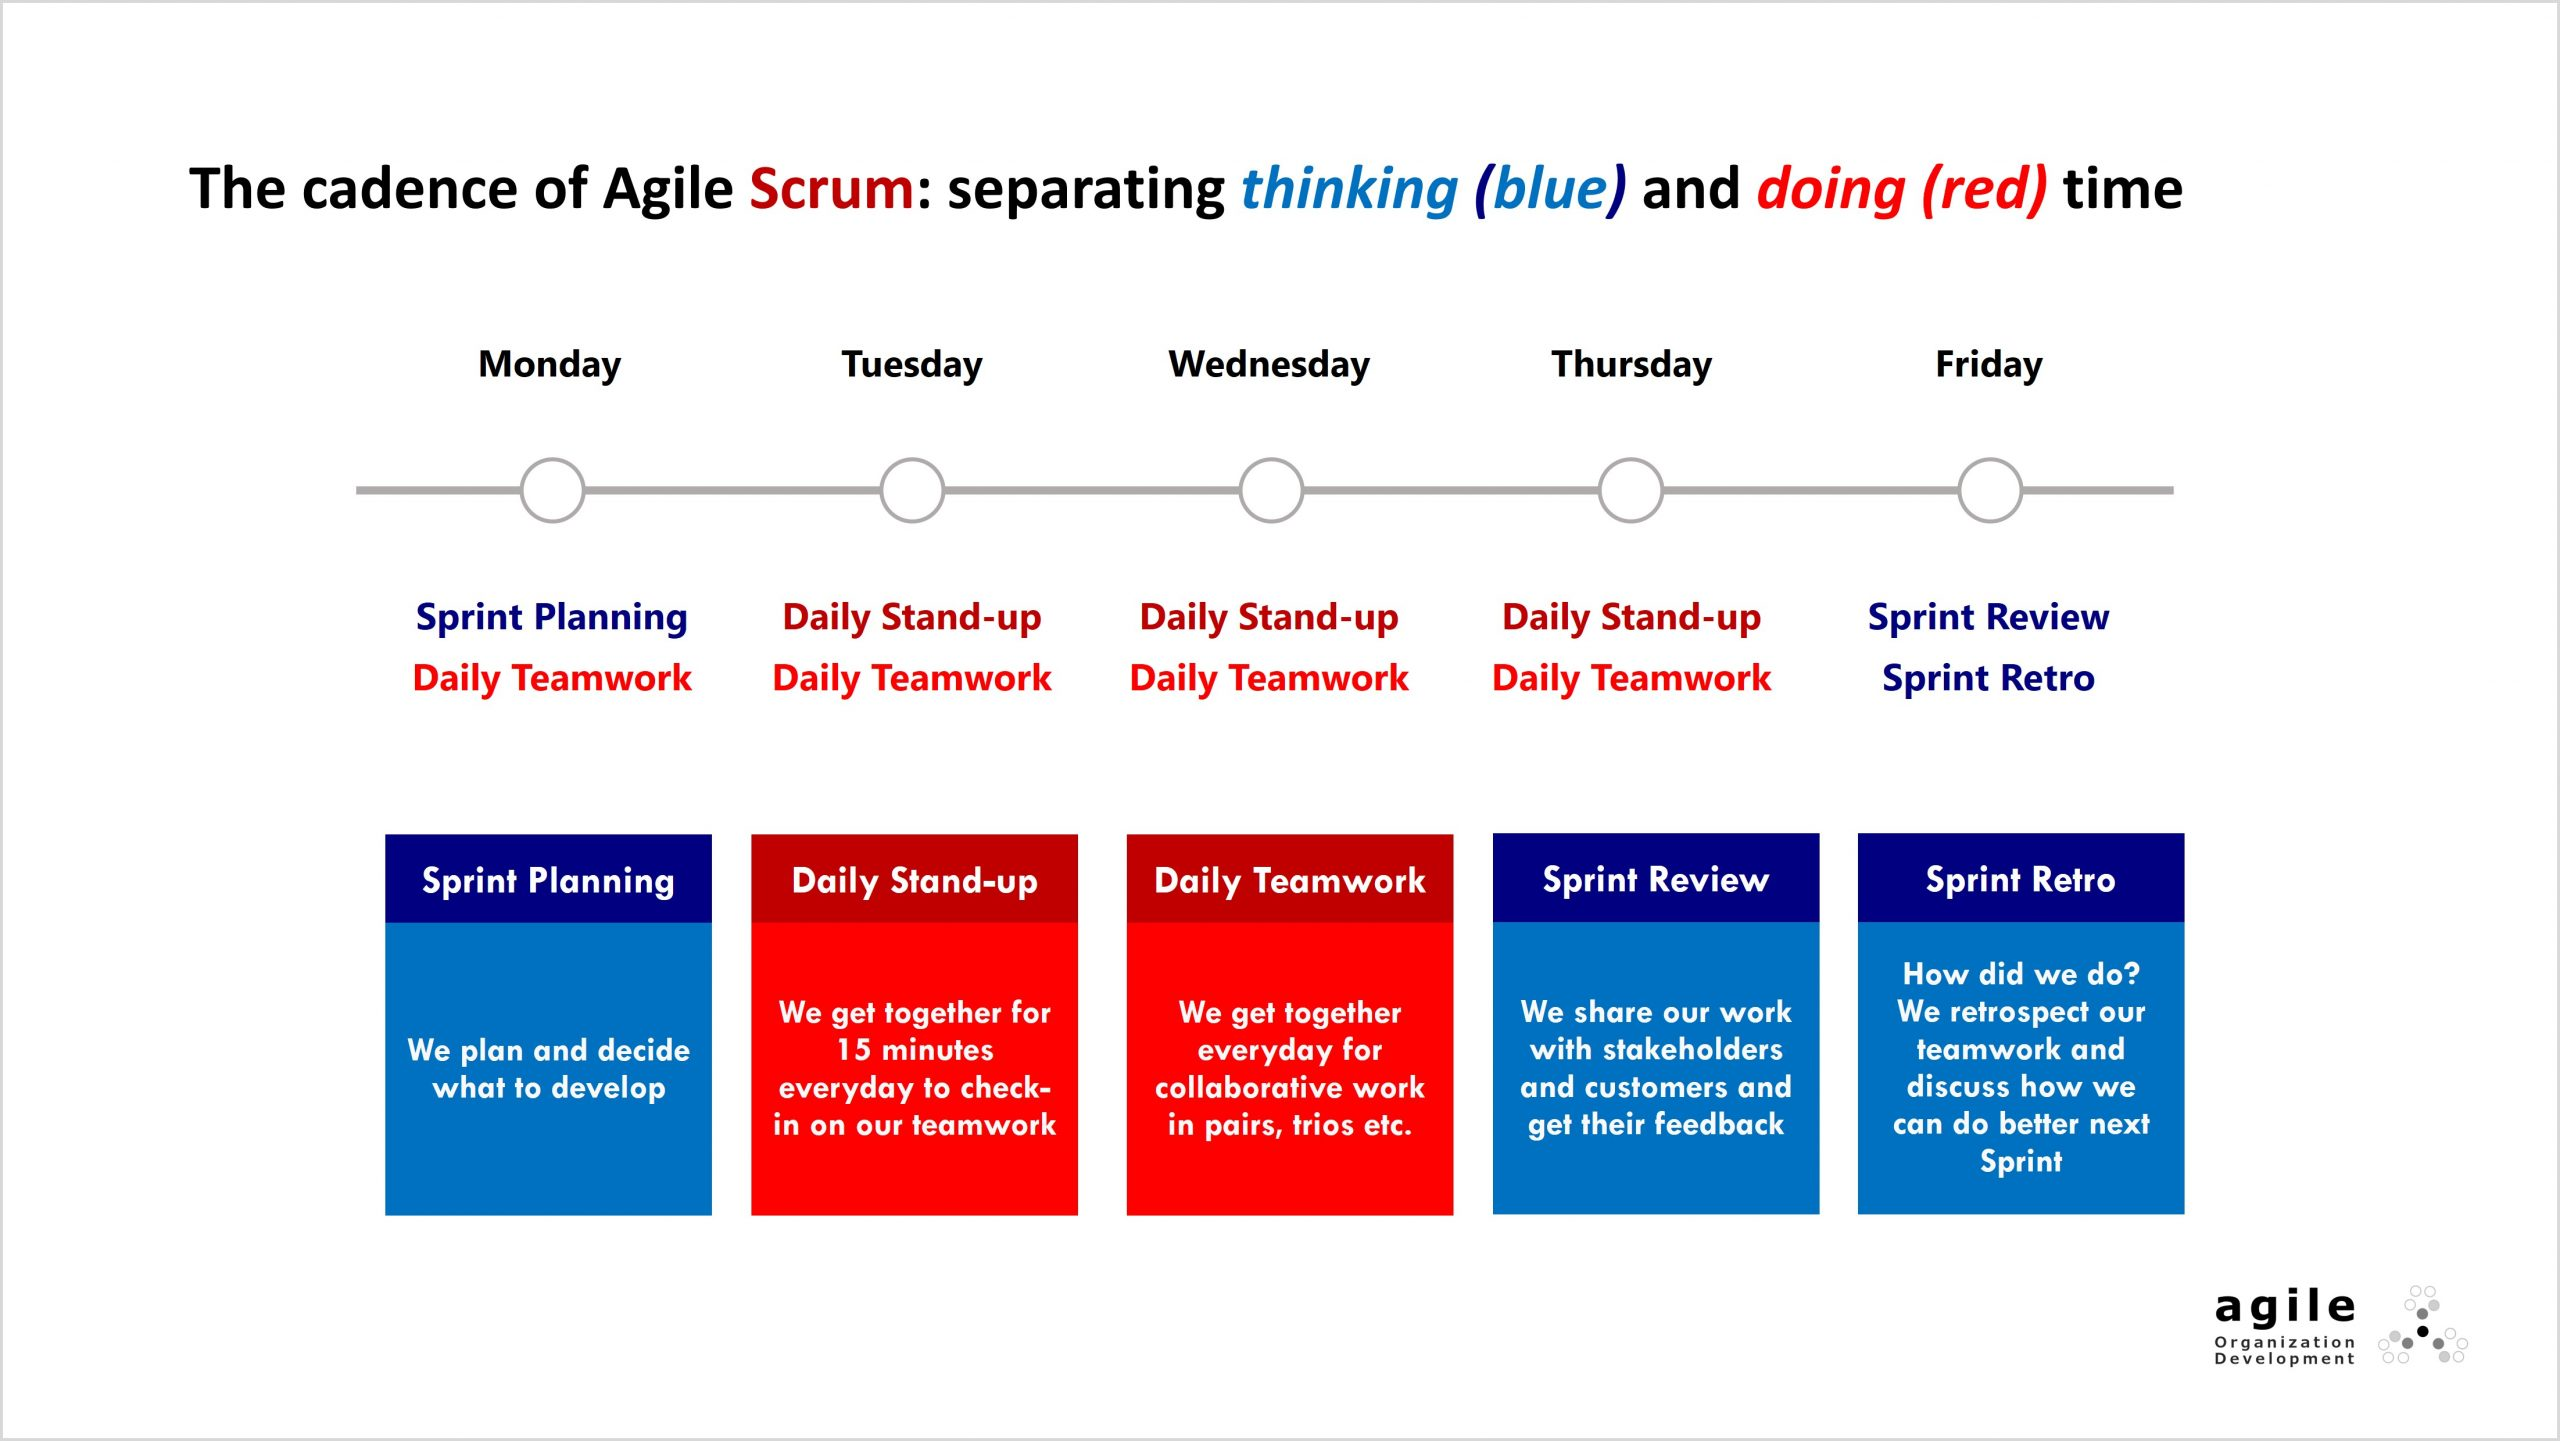 Agile Scrum separting blue thinking red doing time